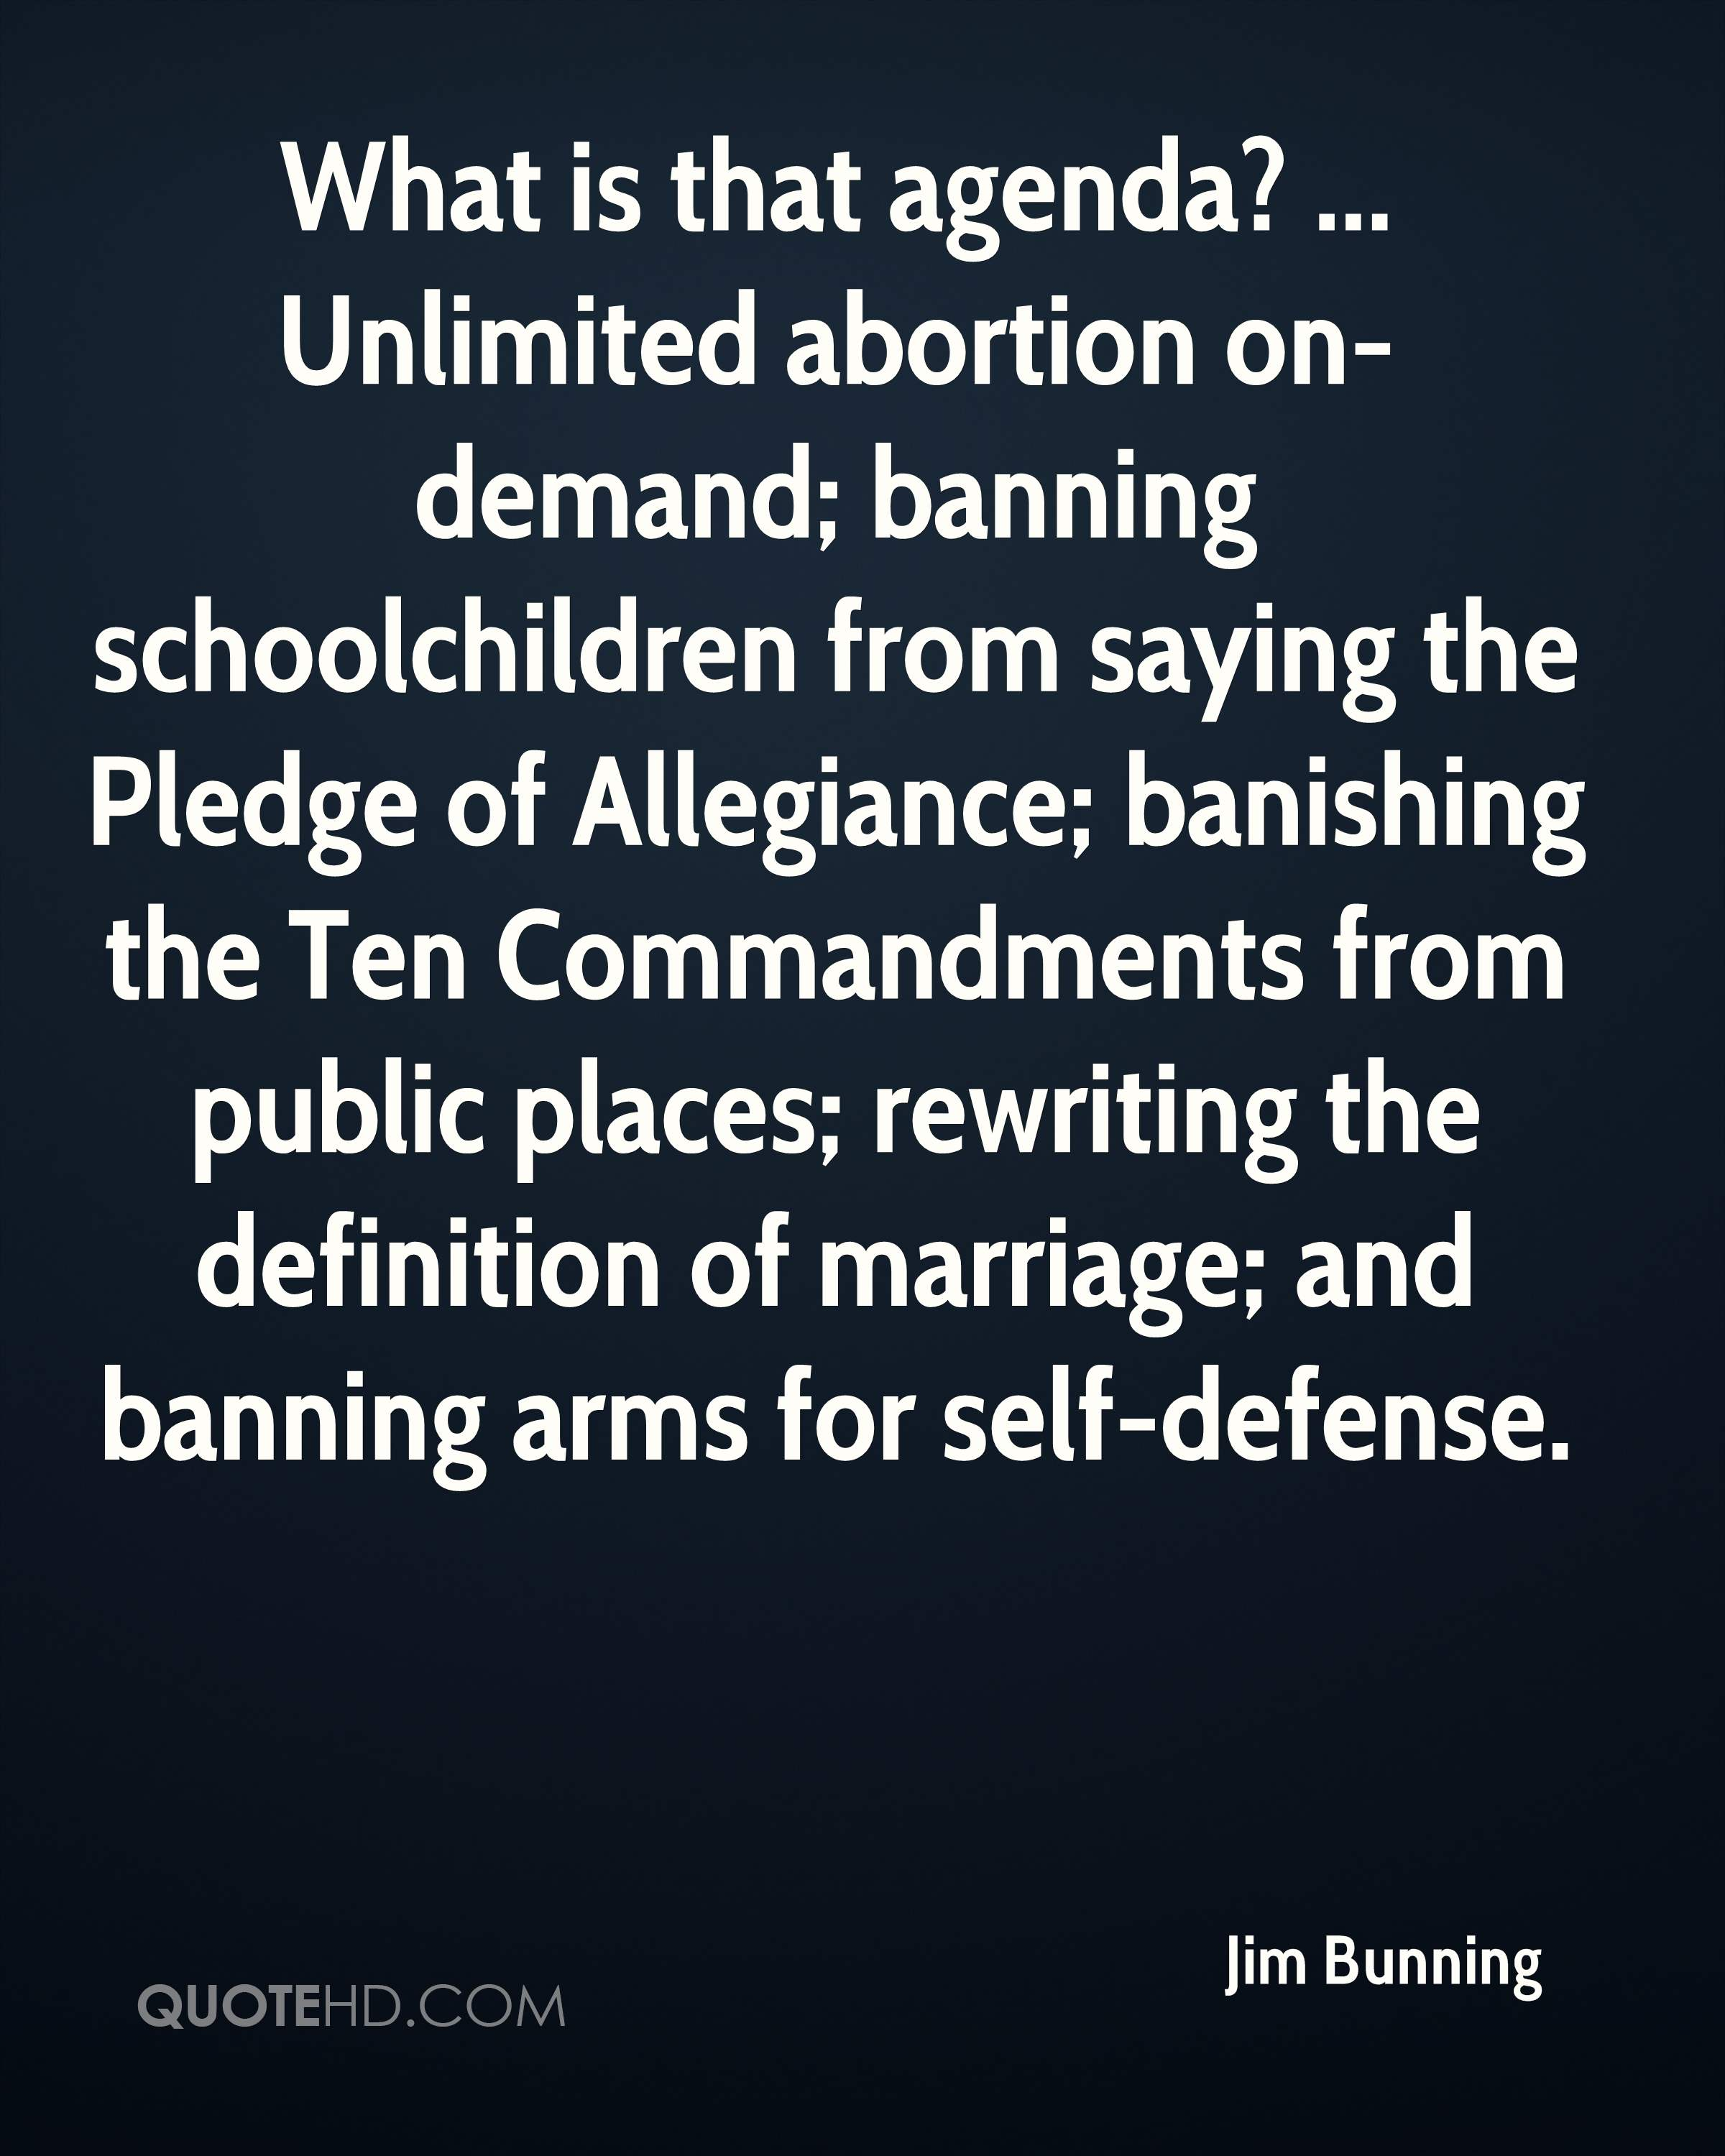 What is that agenda? ... Unlimited abortion on-demand; banning schoolchildren from saying the Pledge of Allegiance; banishing the Ten Commandments from public places; rewriting the definition of marriage; and banning arms for self-defense.